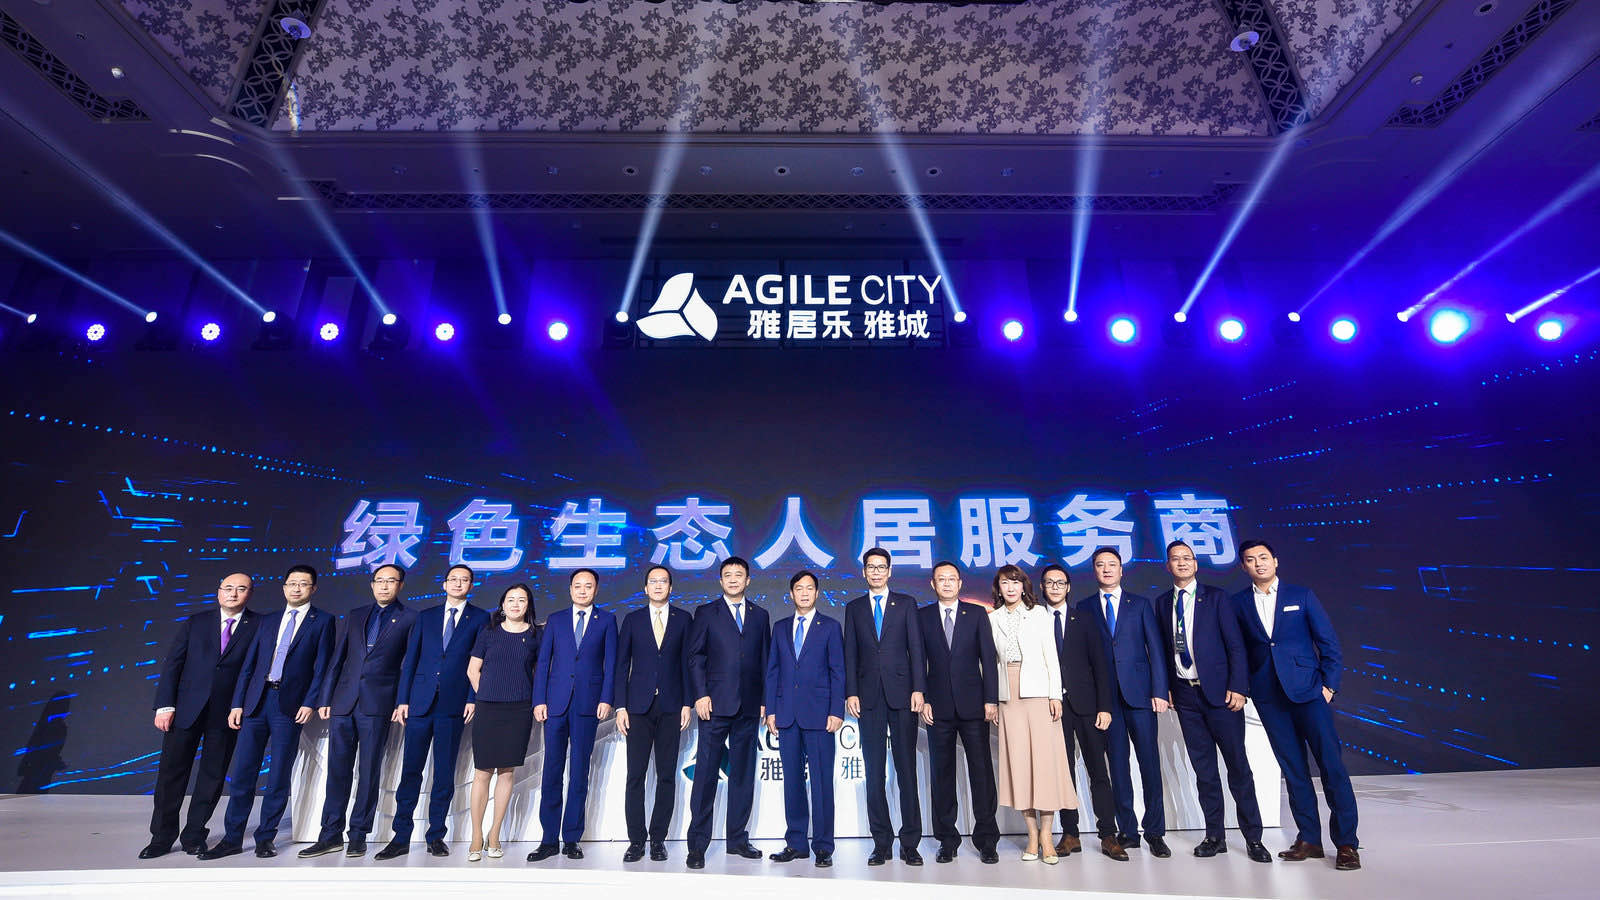 A-City Launches Its New Brand Concept in an Event Featuring the Beauty of Smart Living